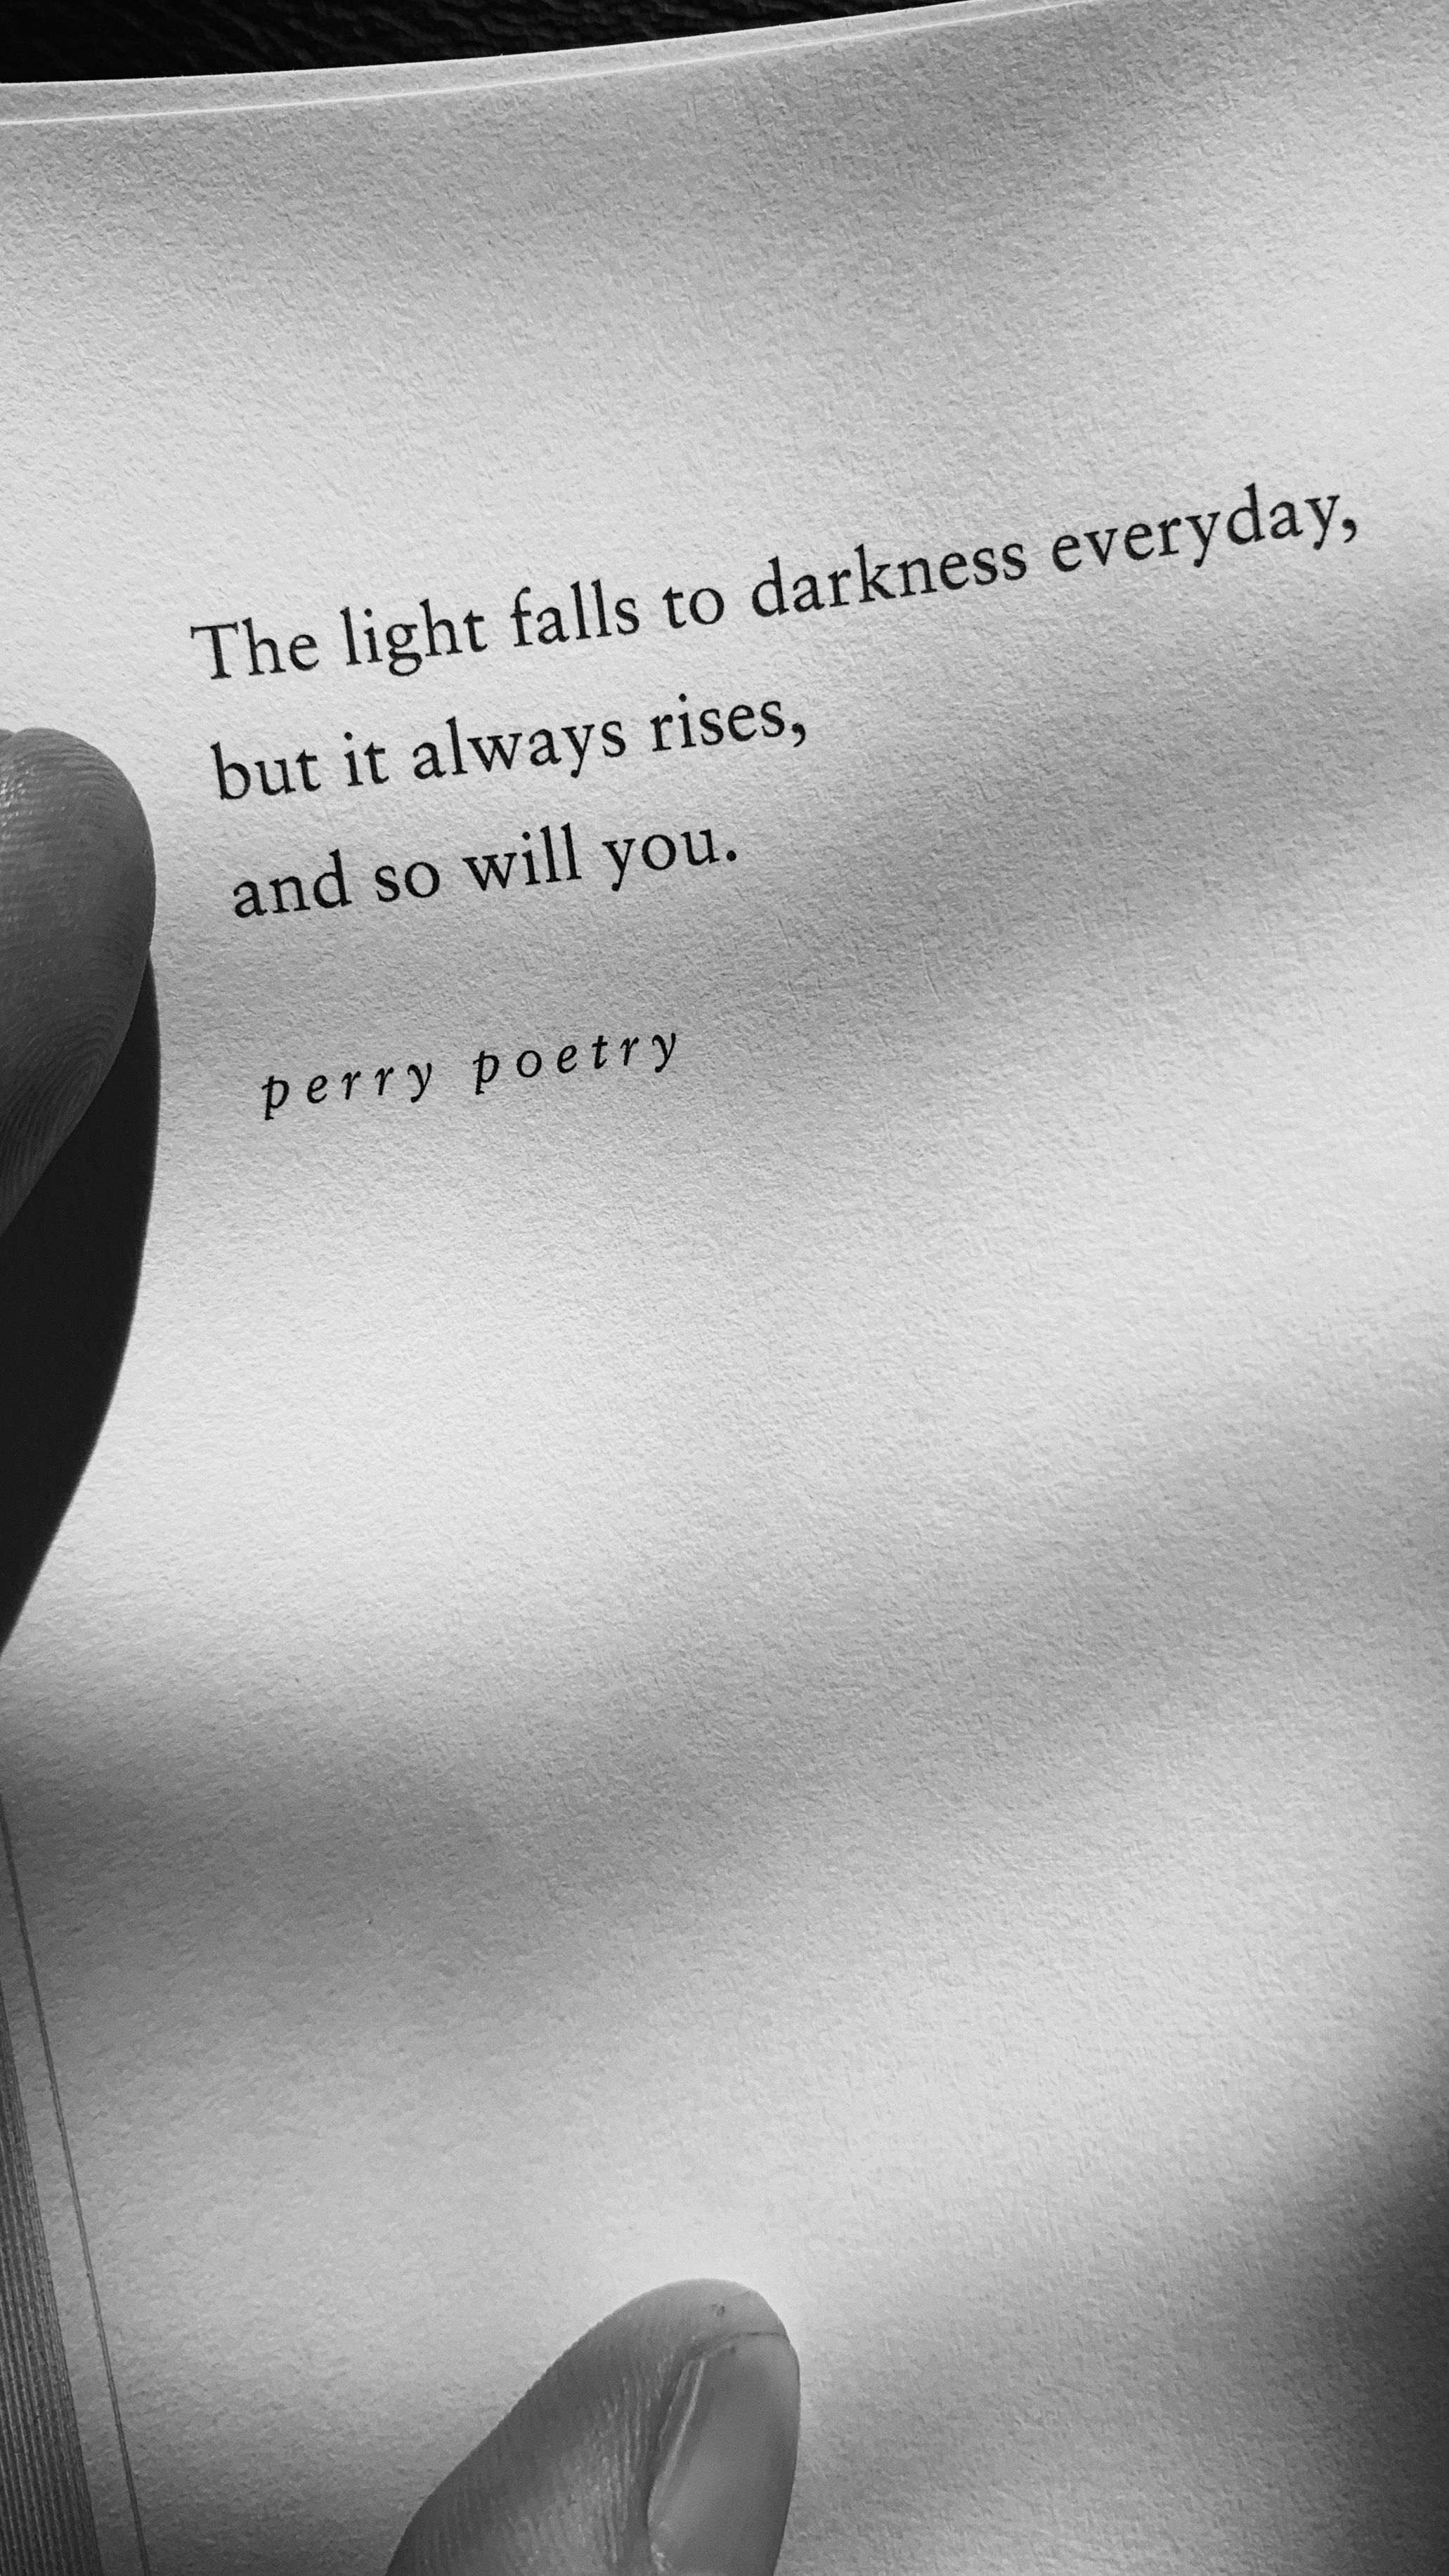 follow @perrypoetry on instagram for daily poetry. #poem #poetry #poems #quotes #love #perrypoetry #lovequotes #typewriter #writing #words #text #poet #writer Perry Poetry #inspirationalpoetryquotes